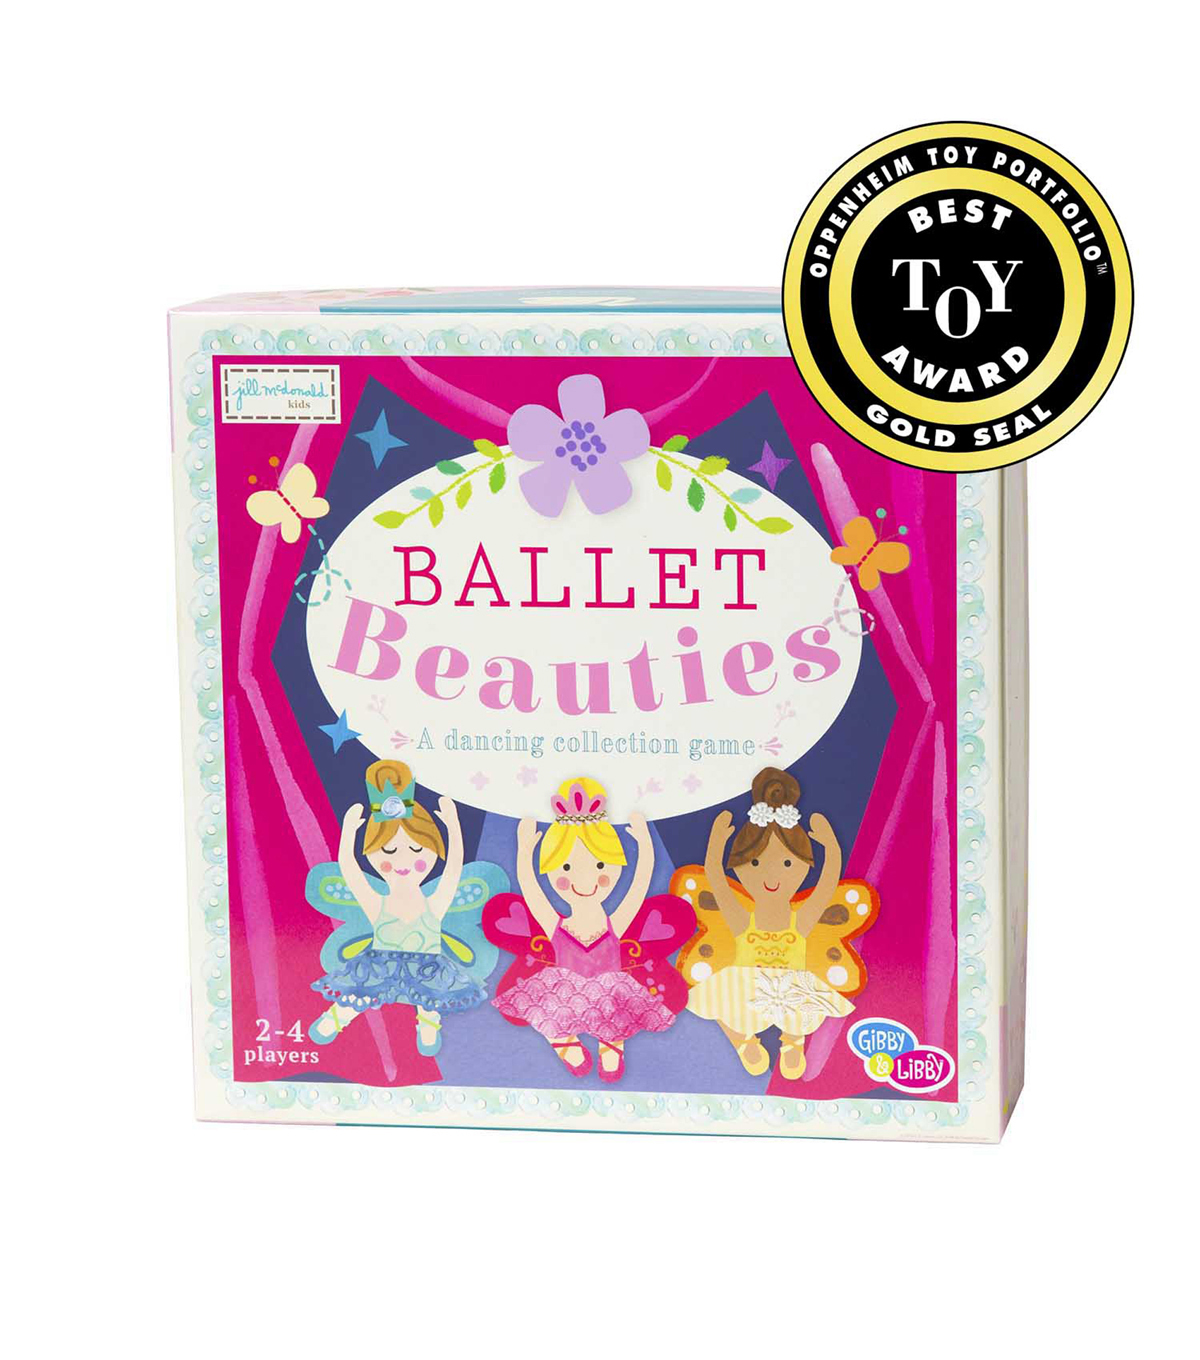 Gibby & Libby Ballet Beauties Board Game